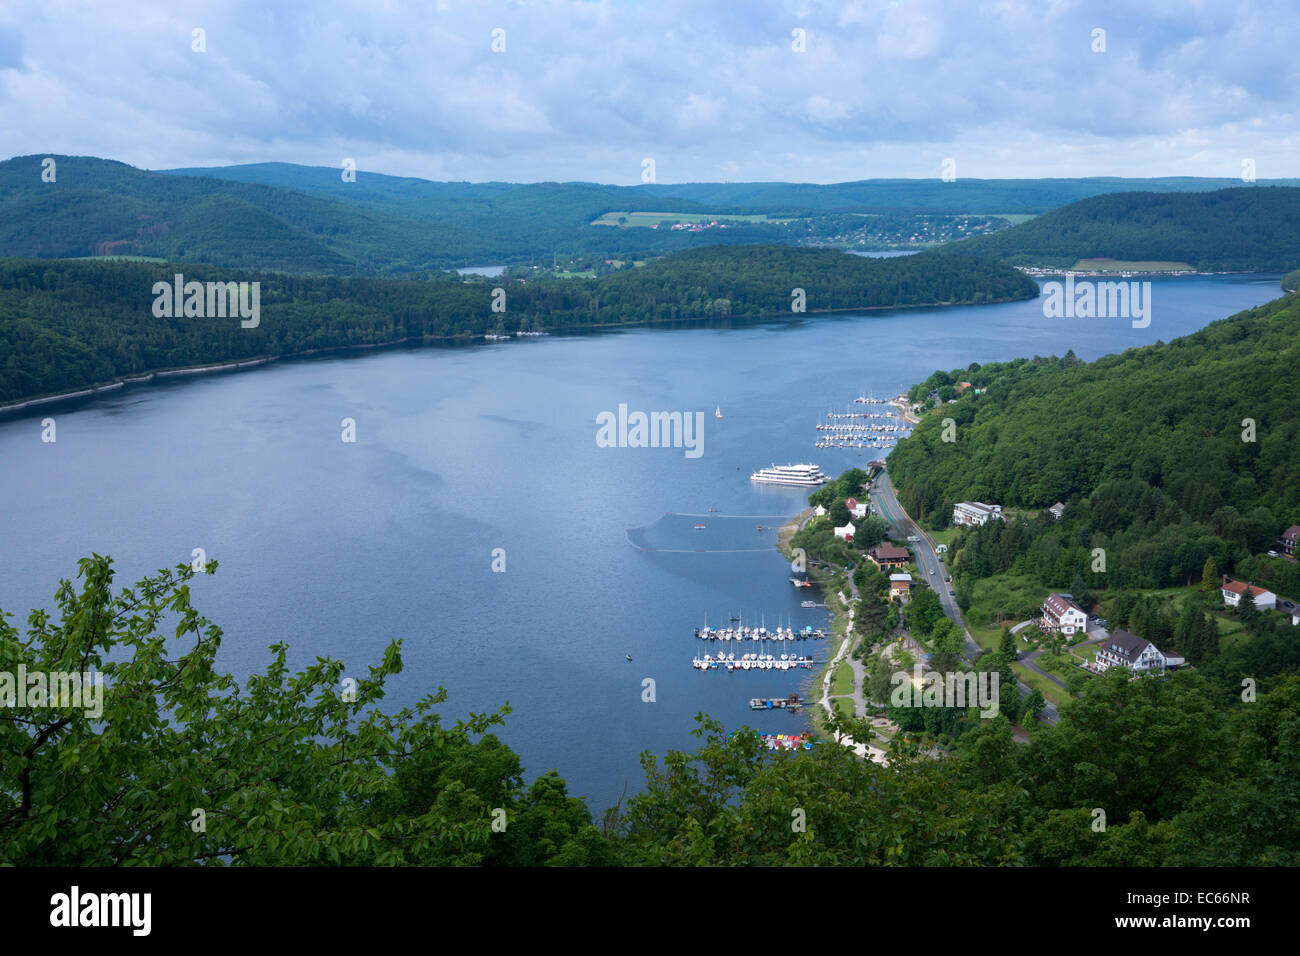 Edersee lake, Northern Hesse, Germany, Europe Stock Photo